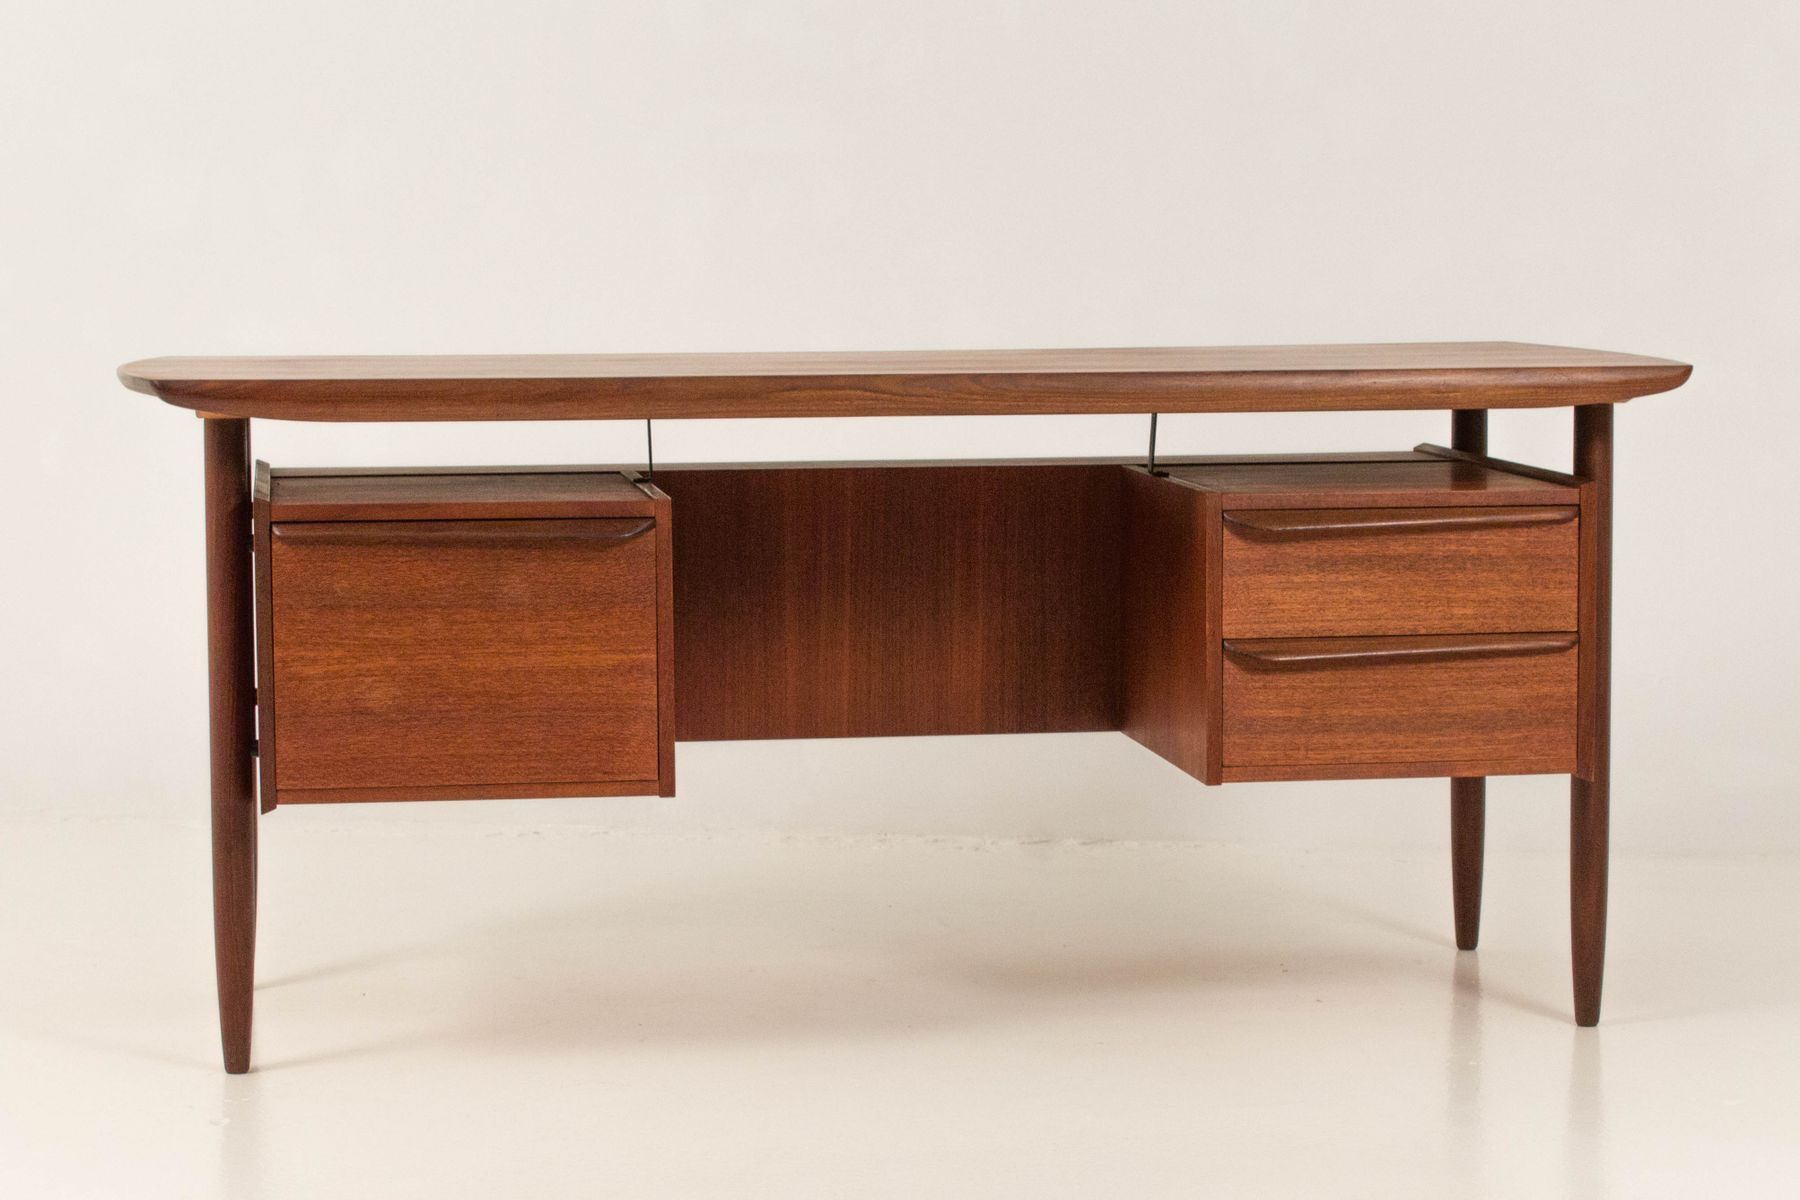 Mid century modern floating top desk and chair by for Floating desk for sale